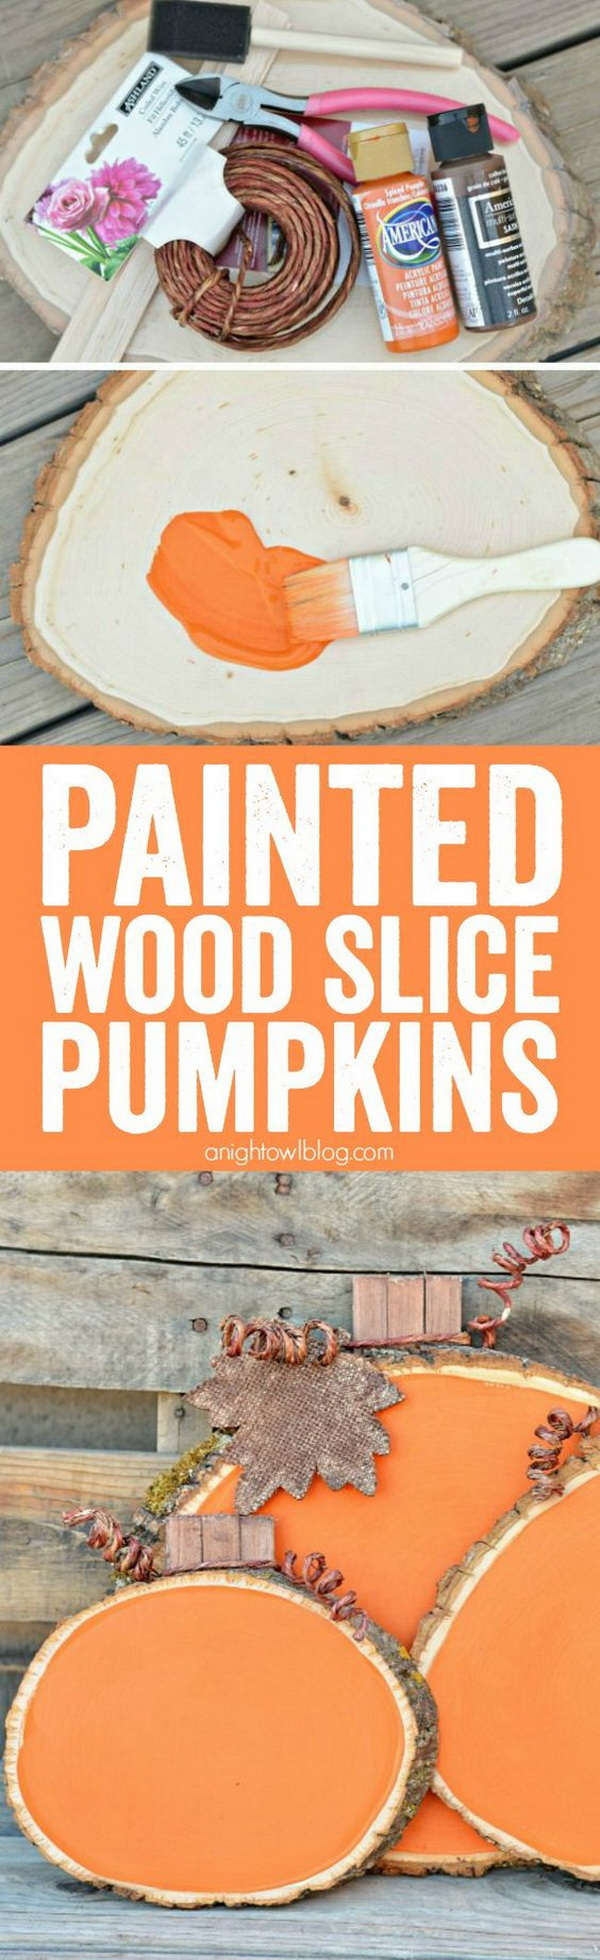 Painted Wood Slice Pumpkins. Add some color and whimsy to your fall Decor with these easy and adorable Painted Wood Slice Pumpkins!